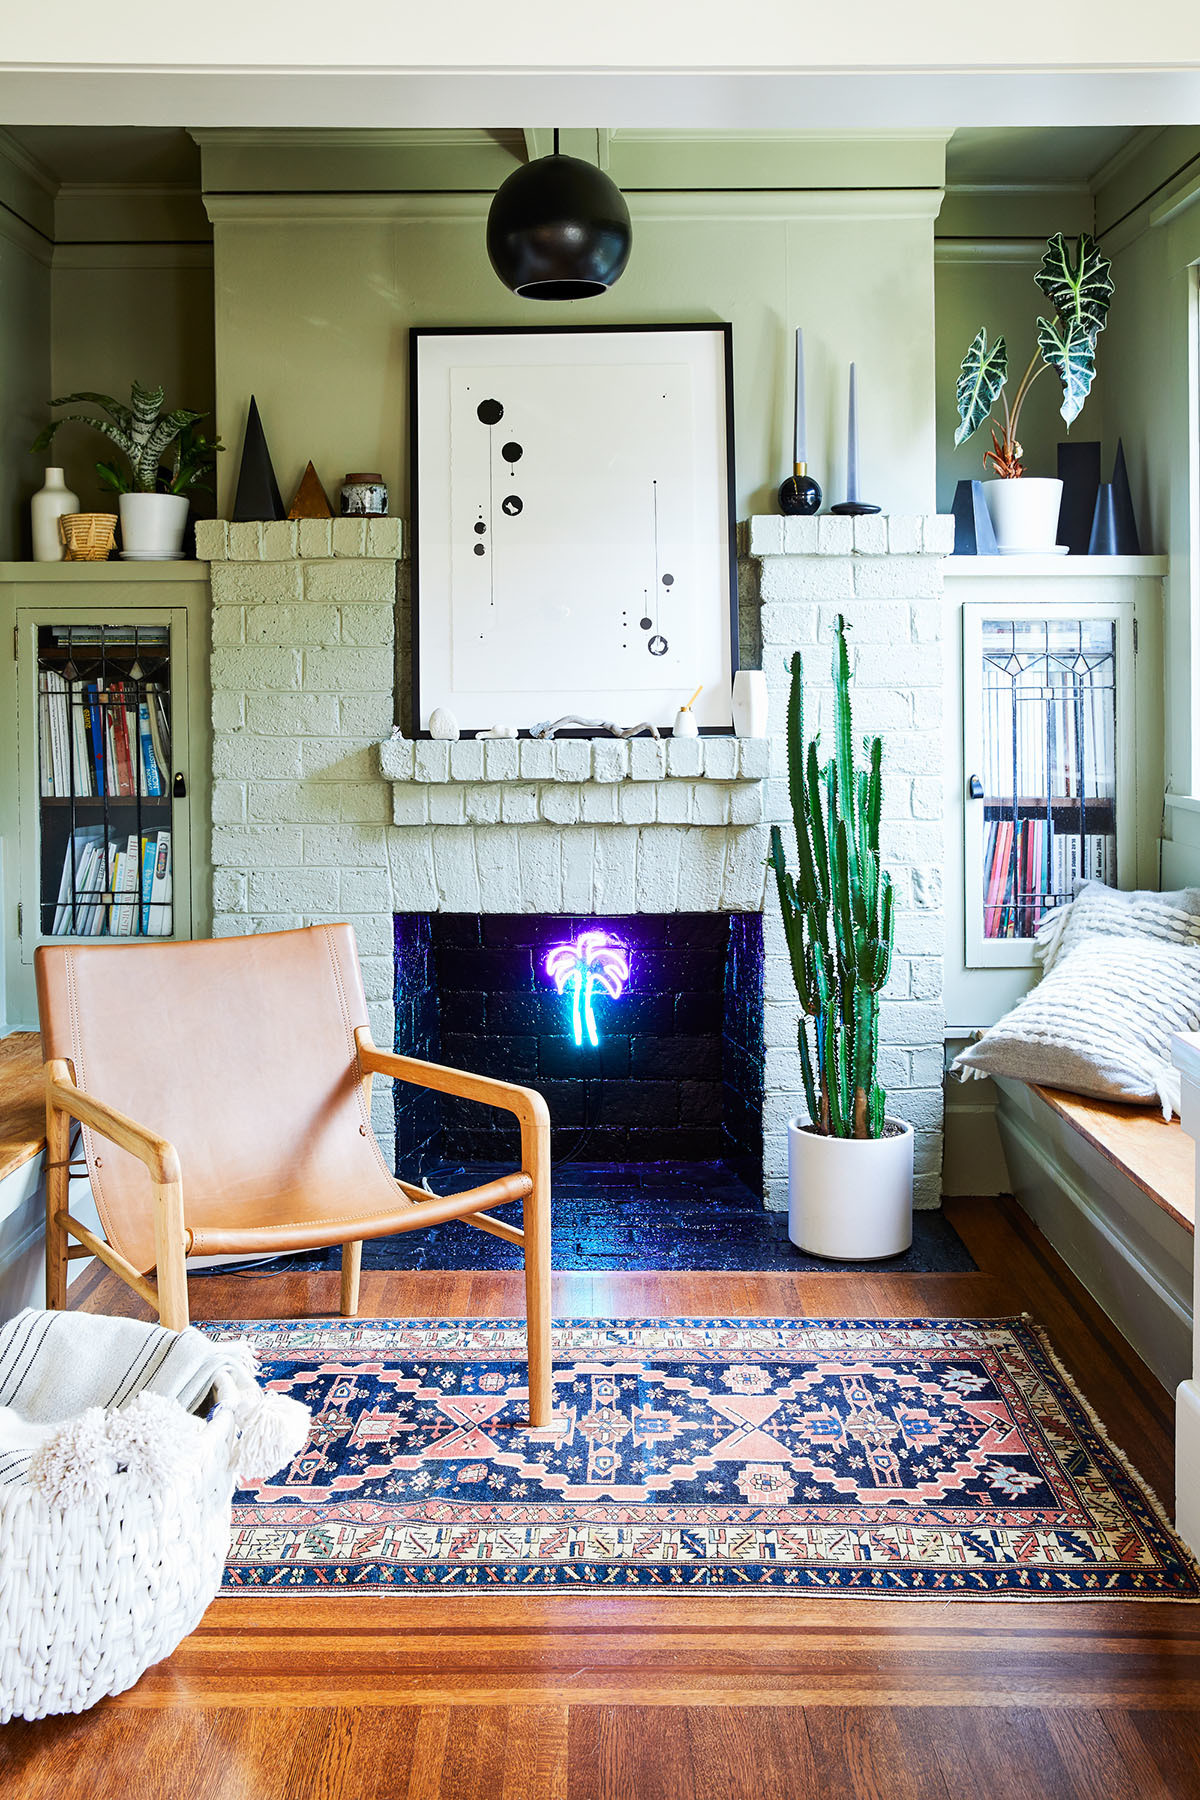 The revamped fireplace room now serves as a funky reading nook. Farrow & Ball Paint | Skye Schuchman Art | Rejuvenation Pendant | ABC Carpet & Home Rug | Barnaby Lane Armchair | Serena & Lily Pillows | Serena & Lily Basket | Meryl Pataky Neon.